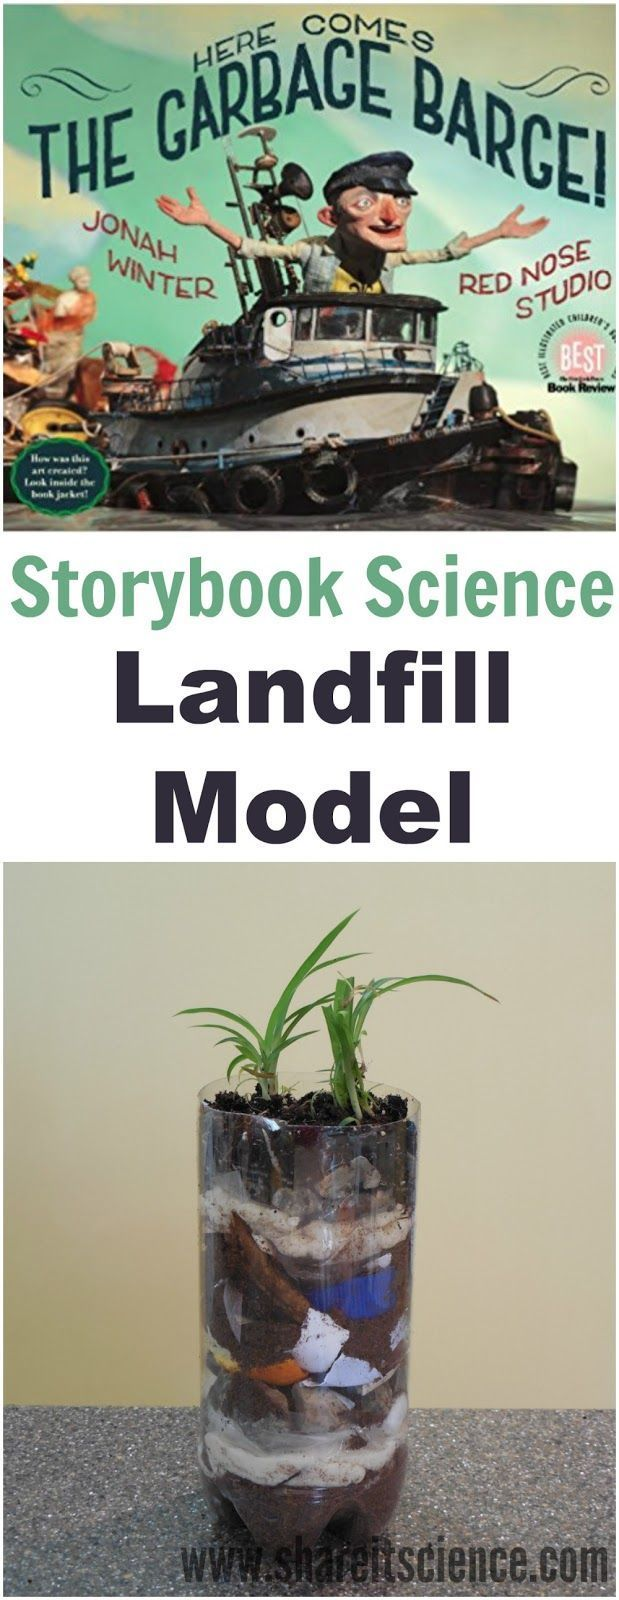 """""""Here Comes the Garbage Barge"""" inspired Landfill Model. Where does our trash go? Use this children's picture book as a launching point for why we should conserve and make less waste! Build a landfill model to understand the process. Awesome for Earth Day or environmental club."""